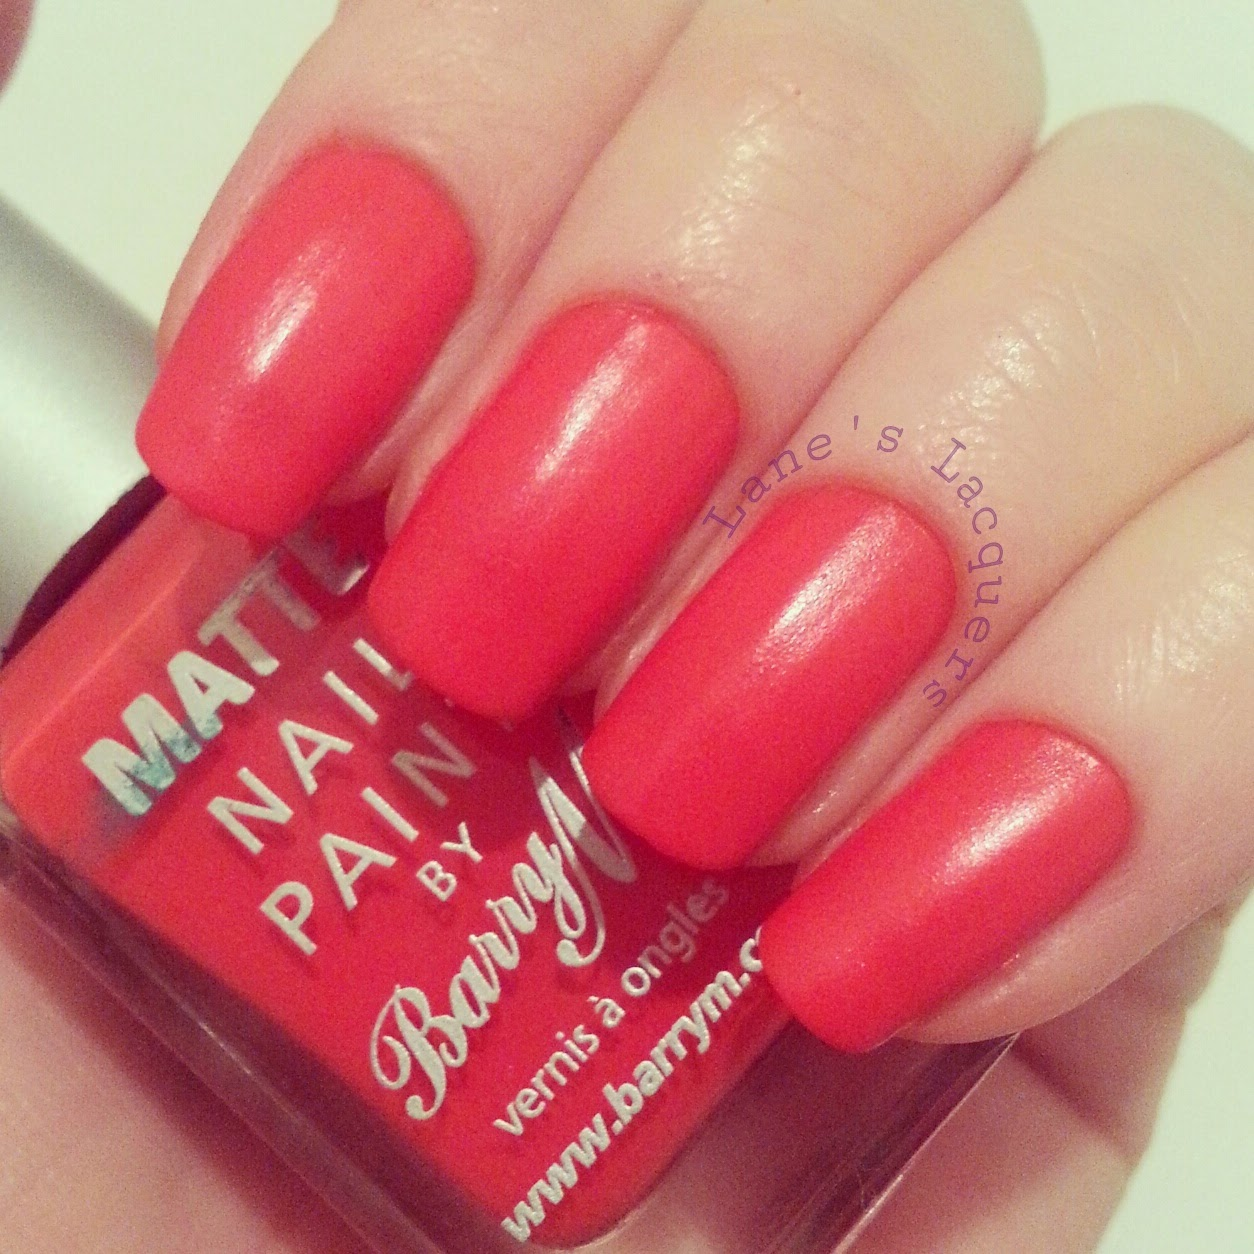 barry-m-copacabana-swatch-manicure (2)